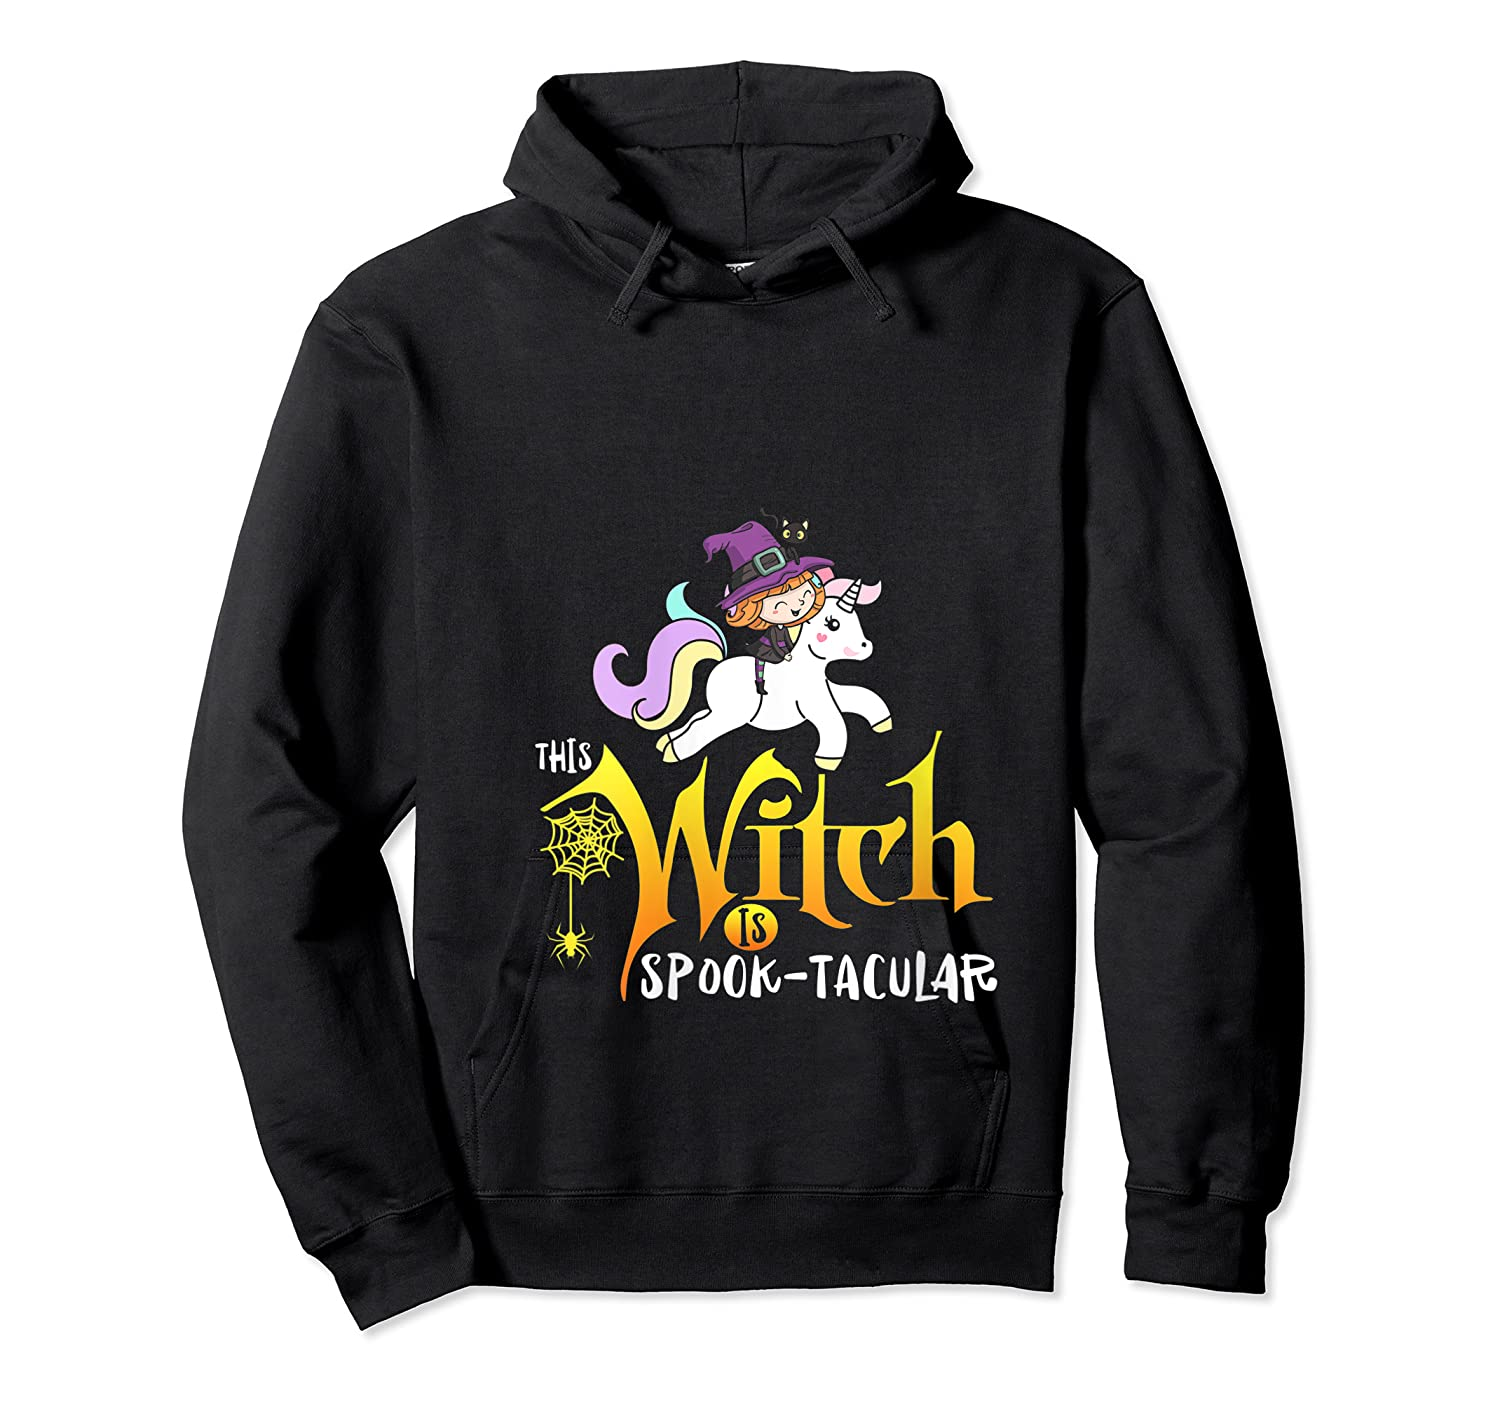 Unicorn Pony This Witch Is Spook Tacular Cute Girls Kawaii Shirts Unisex Pullover Hoodie